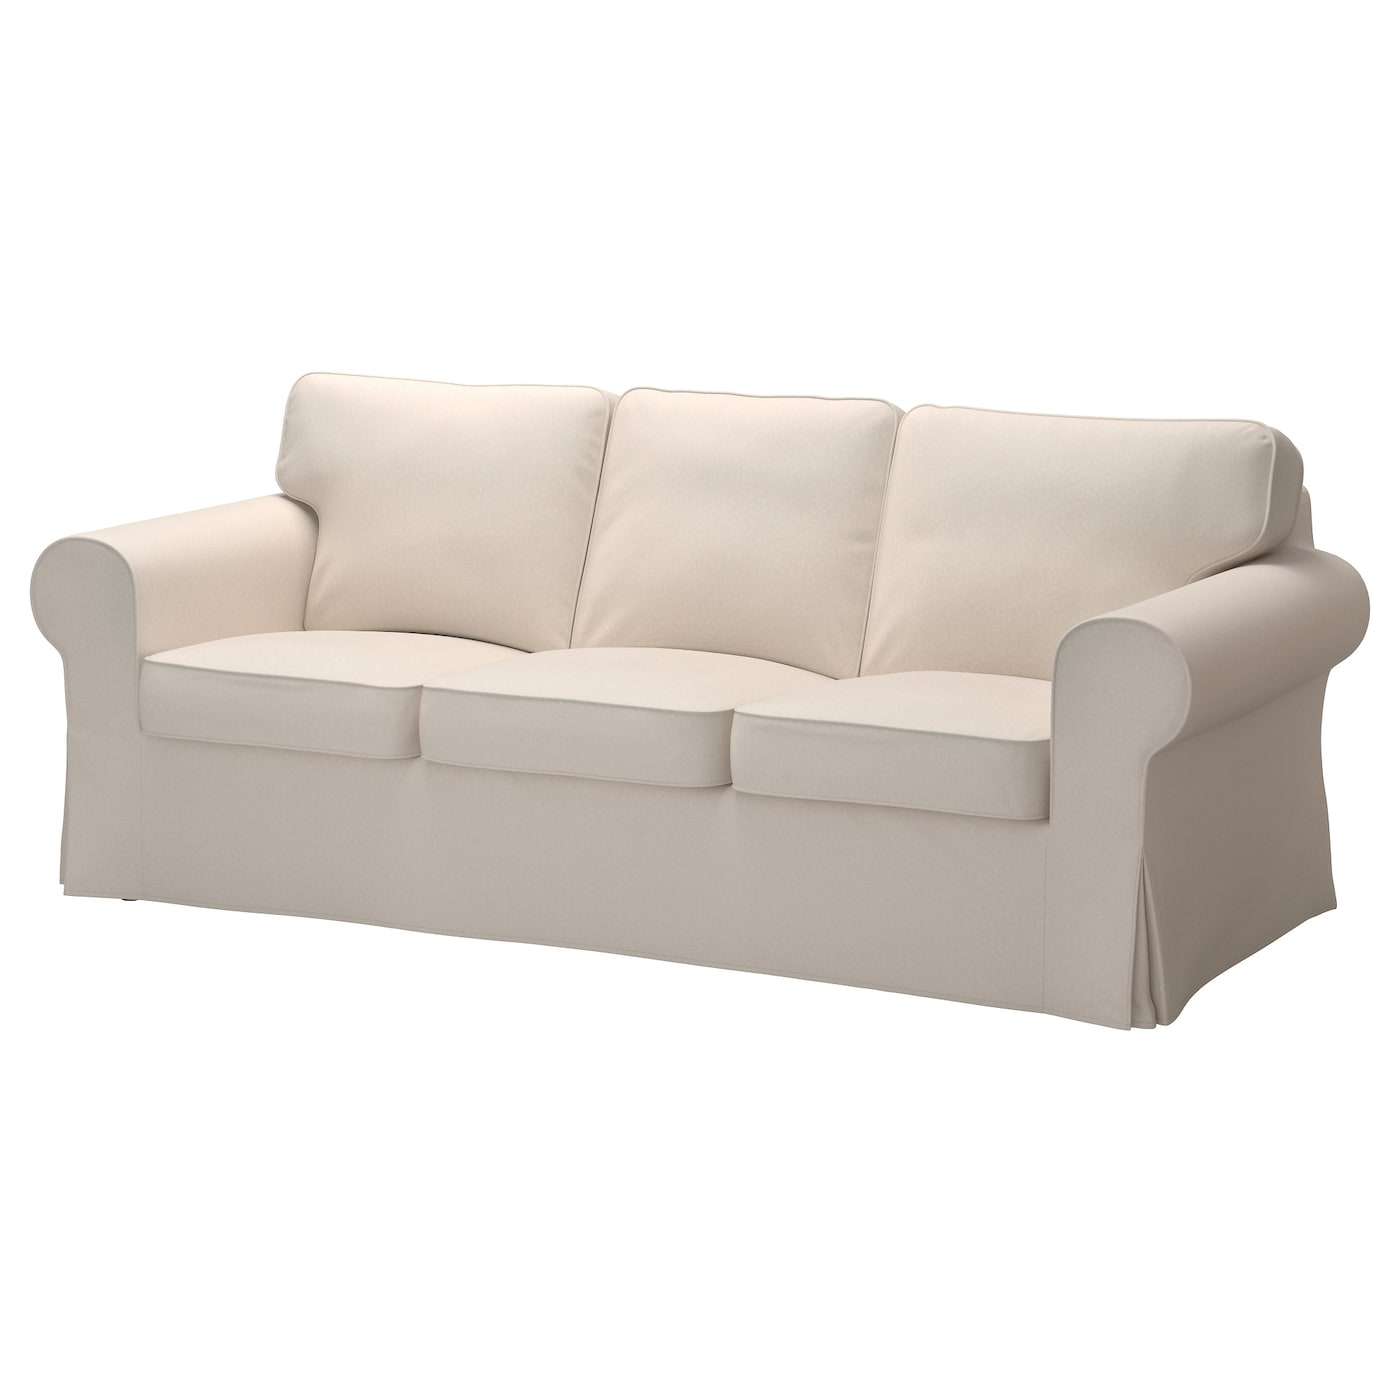 Ikea White Leather Couch Sofas: EKTORP Three-seat Sofa Lofallet Beige